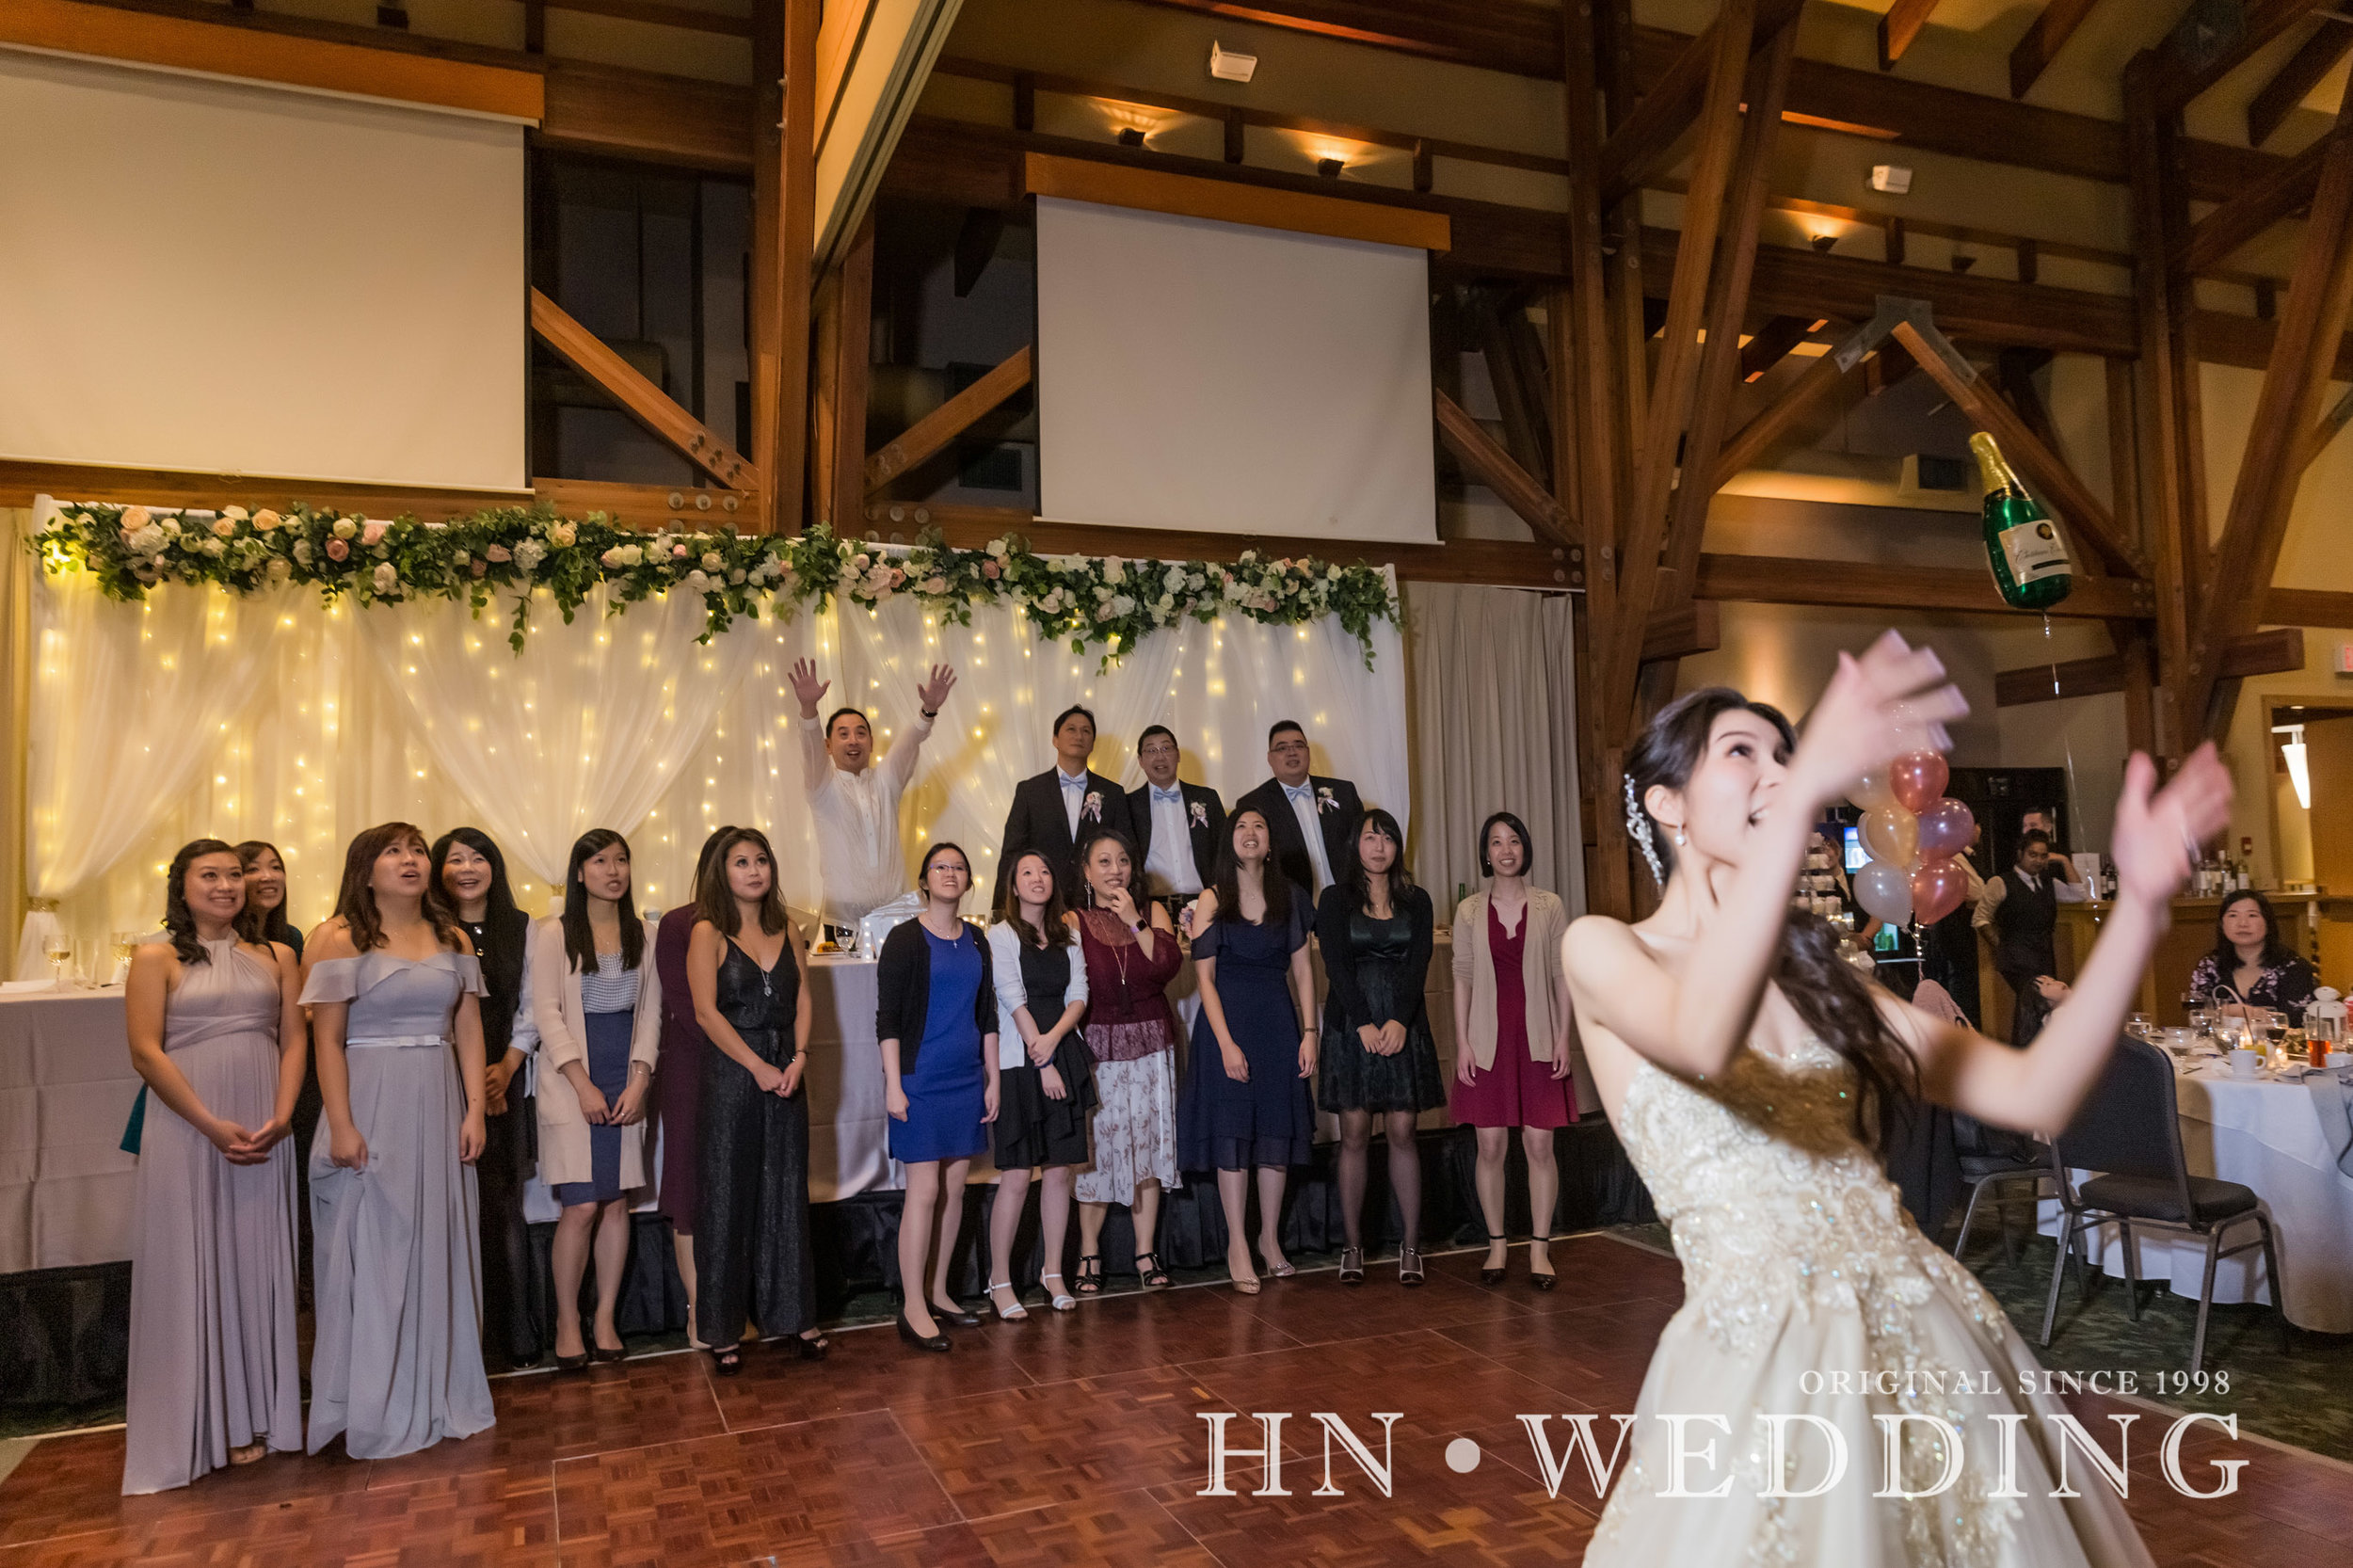 hnweddingweddingday20180526-63.jpg